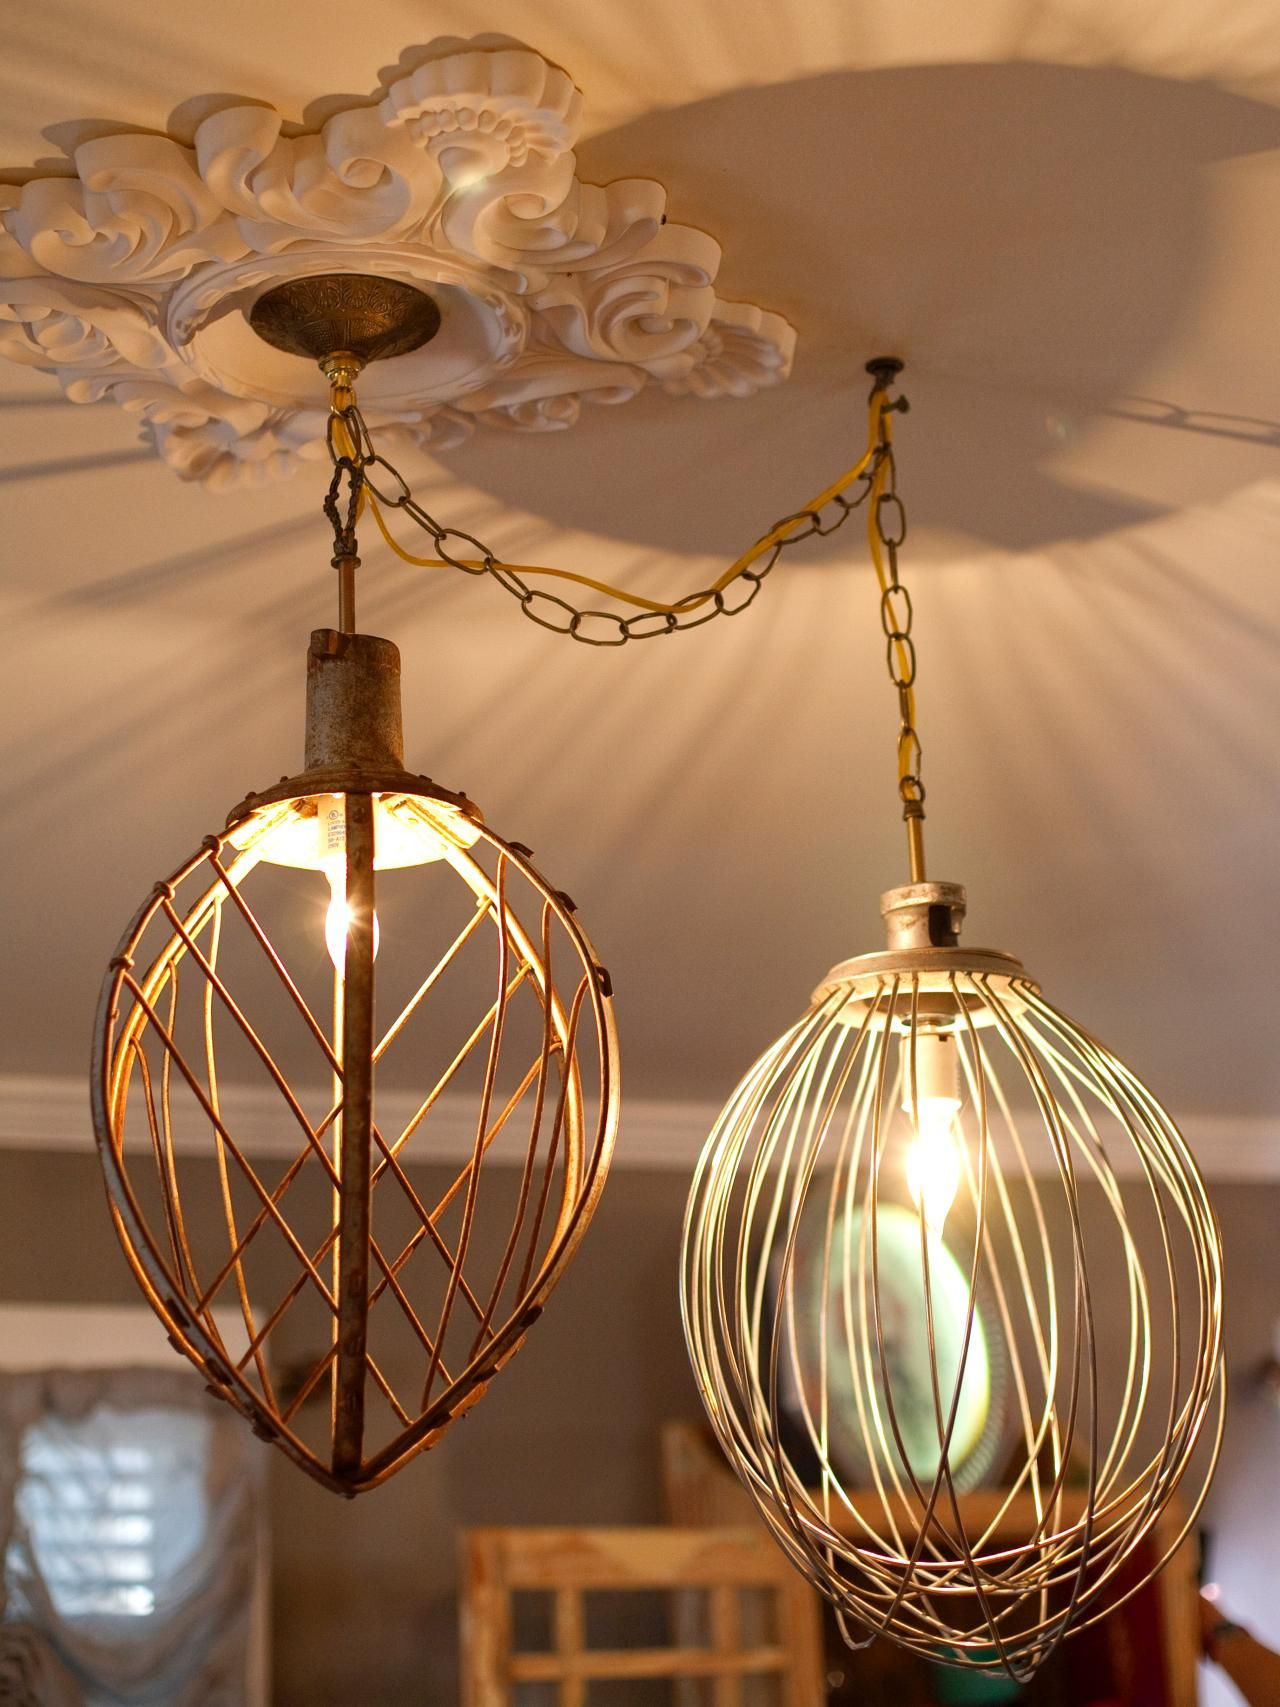 upcycled light fixtures = cool character | craftsman style